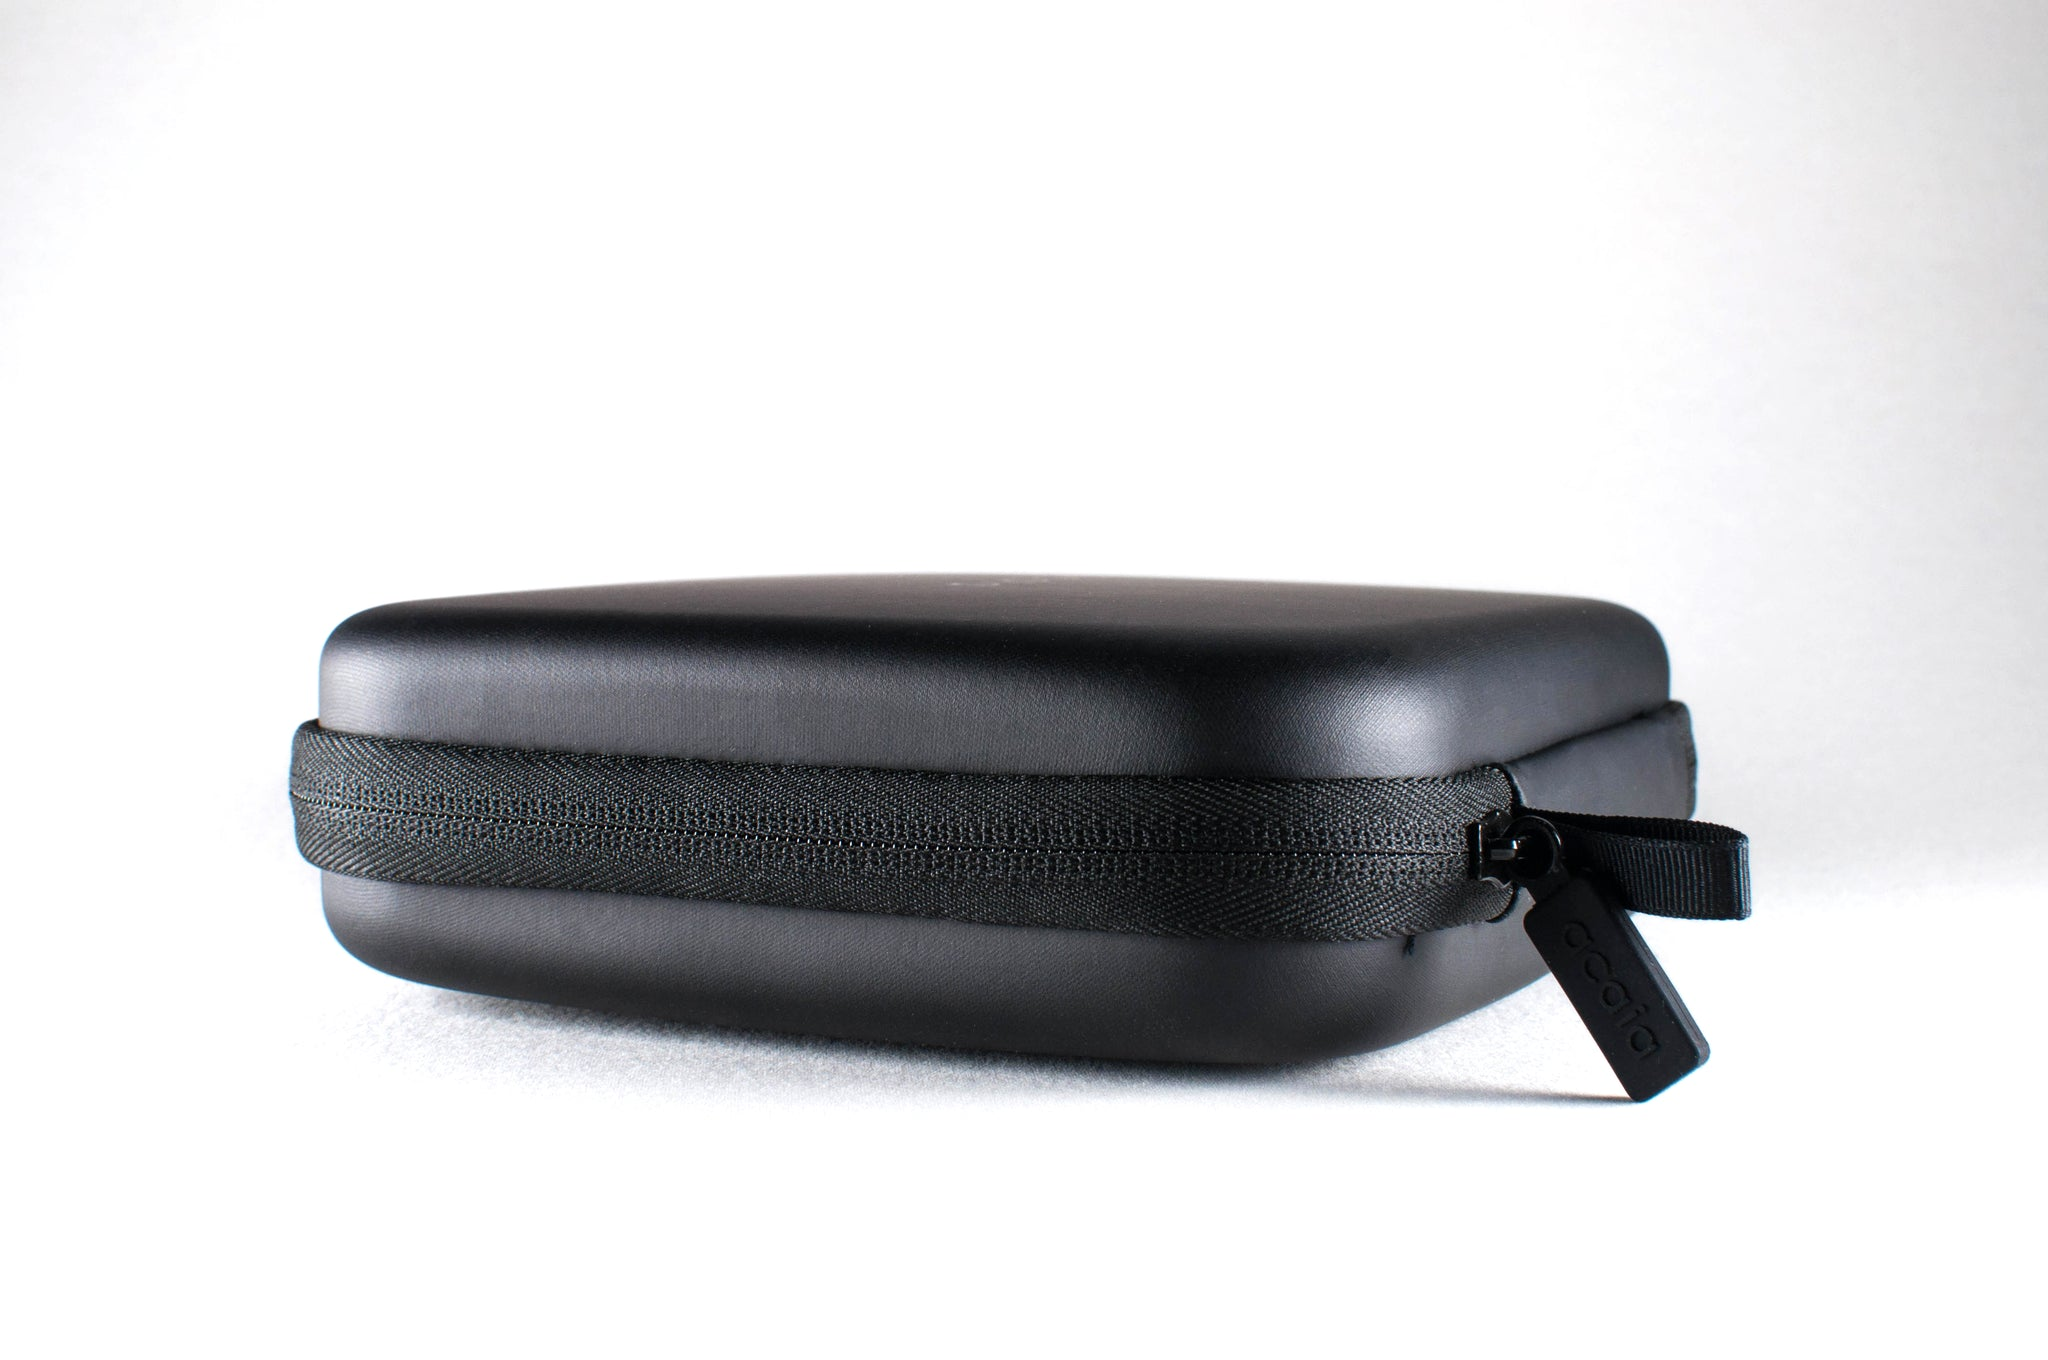 Acaia 'Pearl' Carrying Case